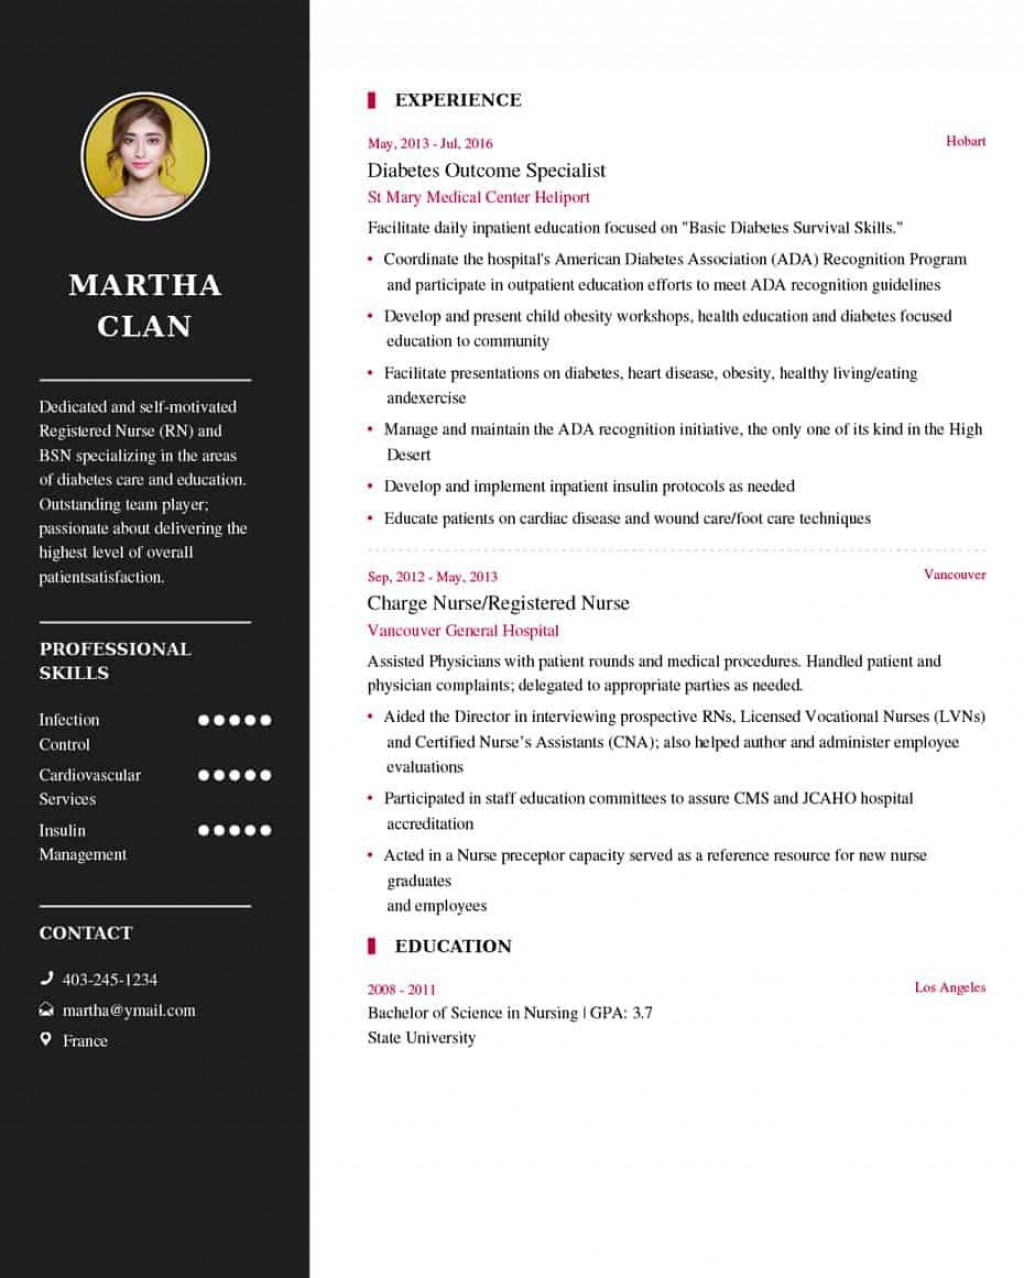 003 Magnificent Resume Template For Nurse Inspiration  Sample Nursing Assistant With No Experience Rn' FreeLarge